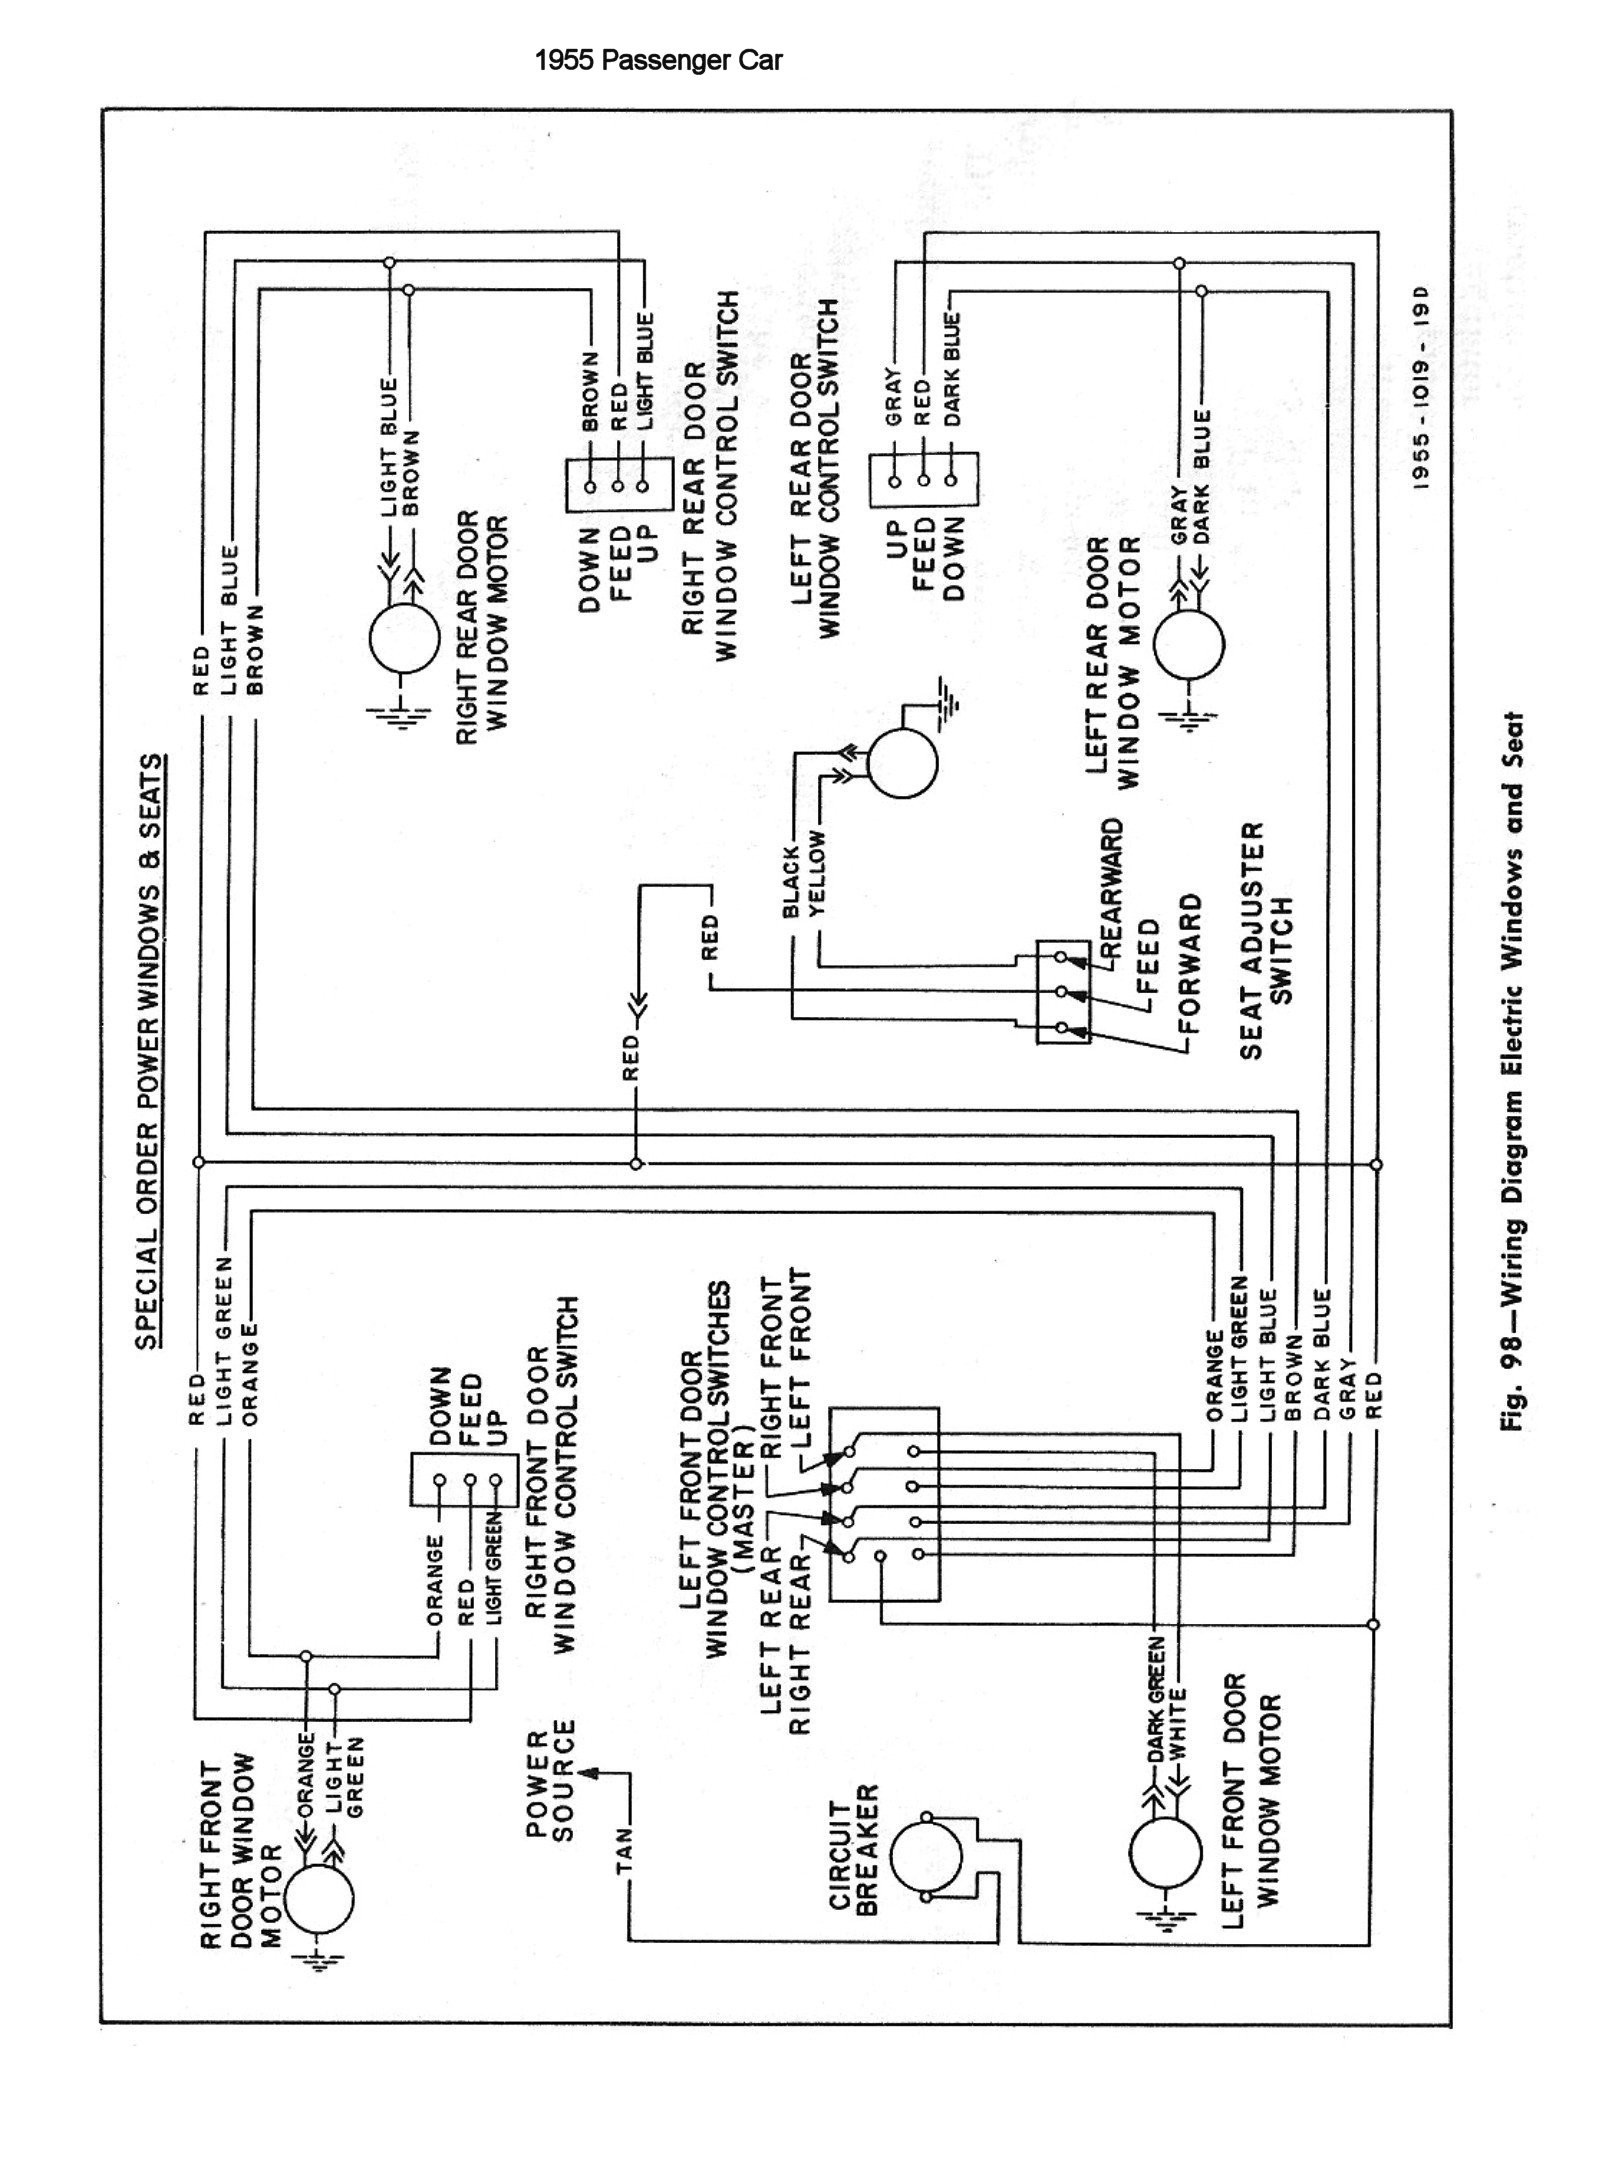 Electrical Wiring Diagram 67 Impala